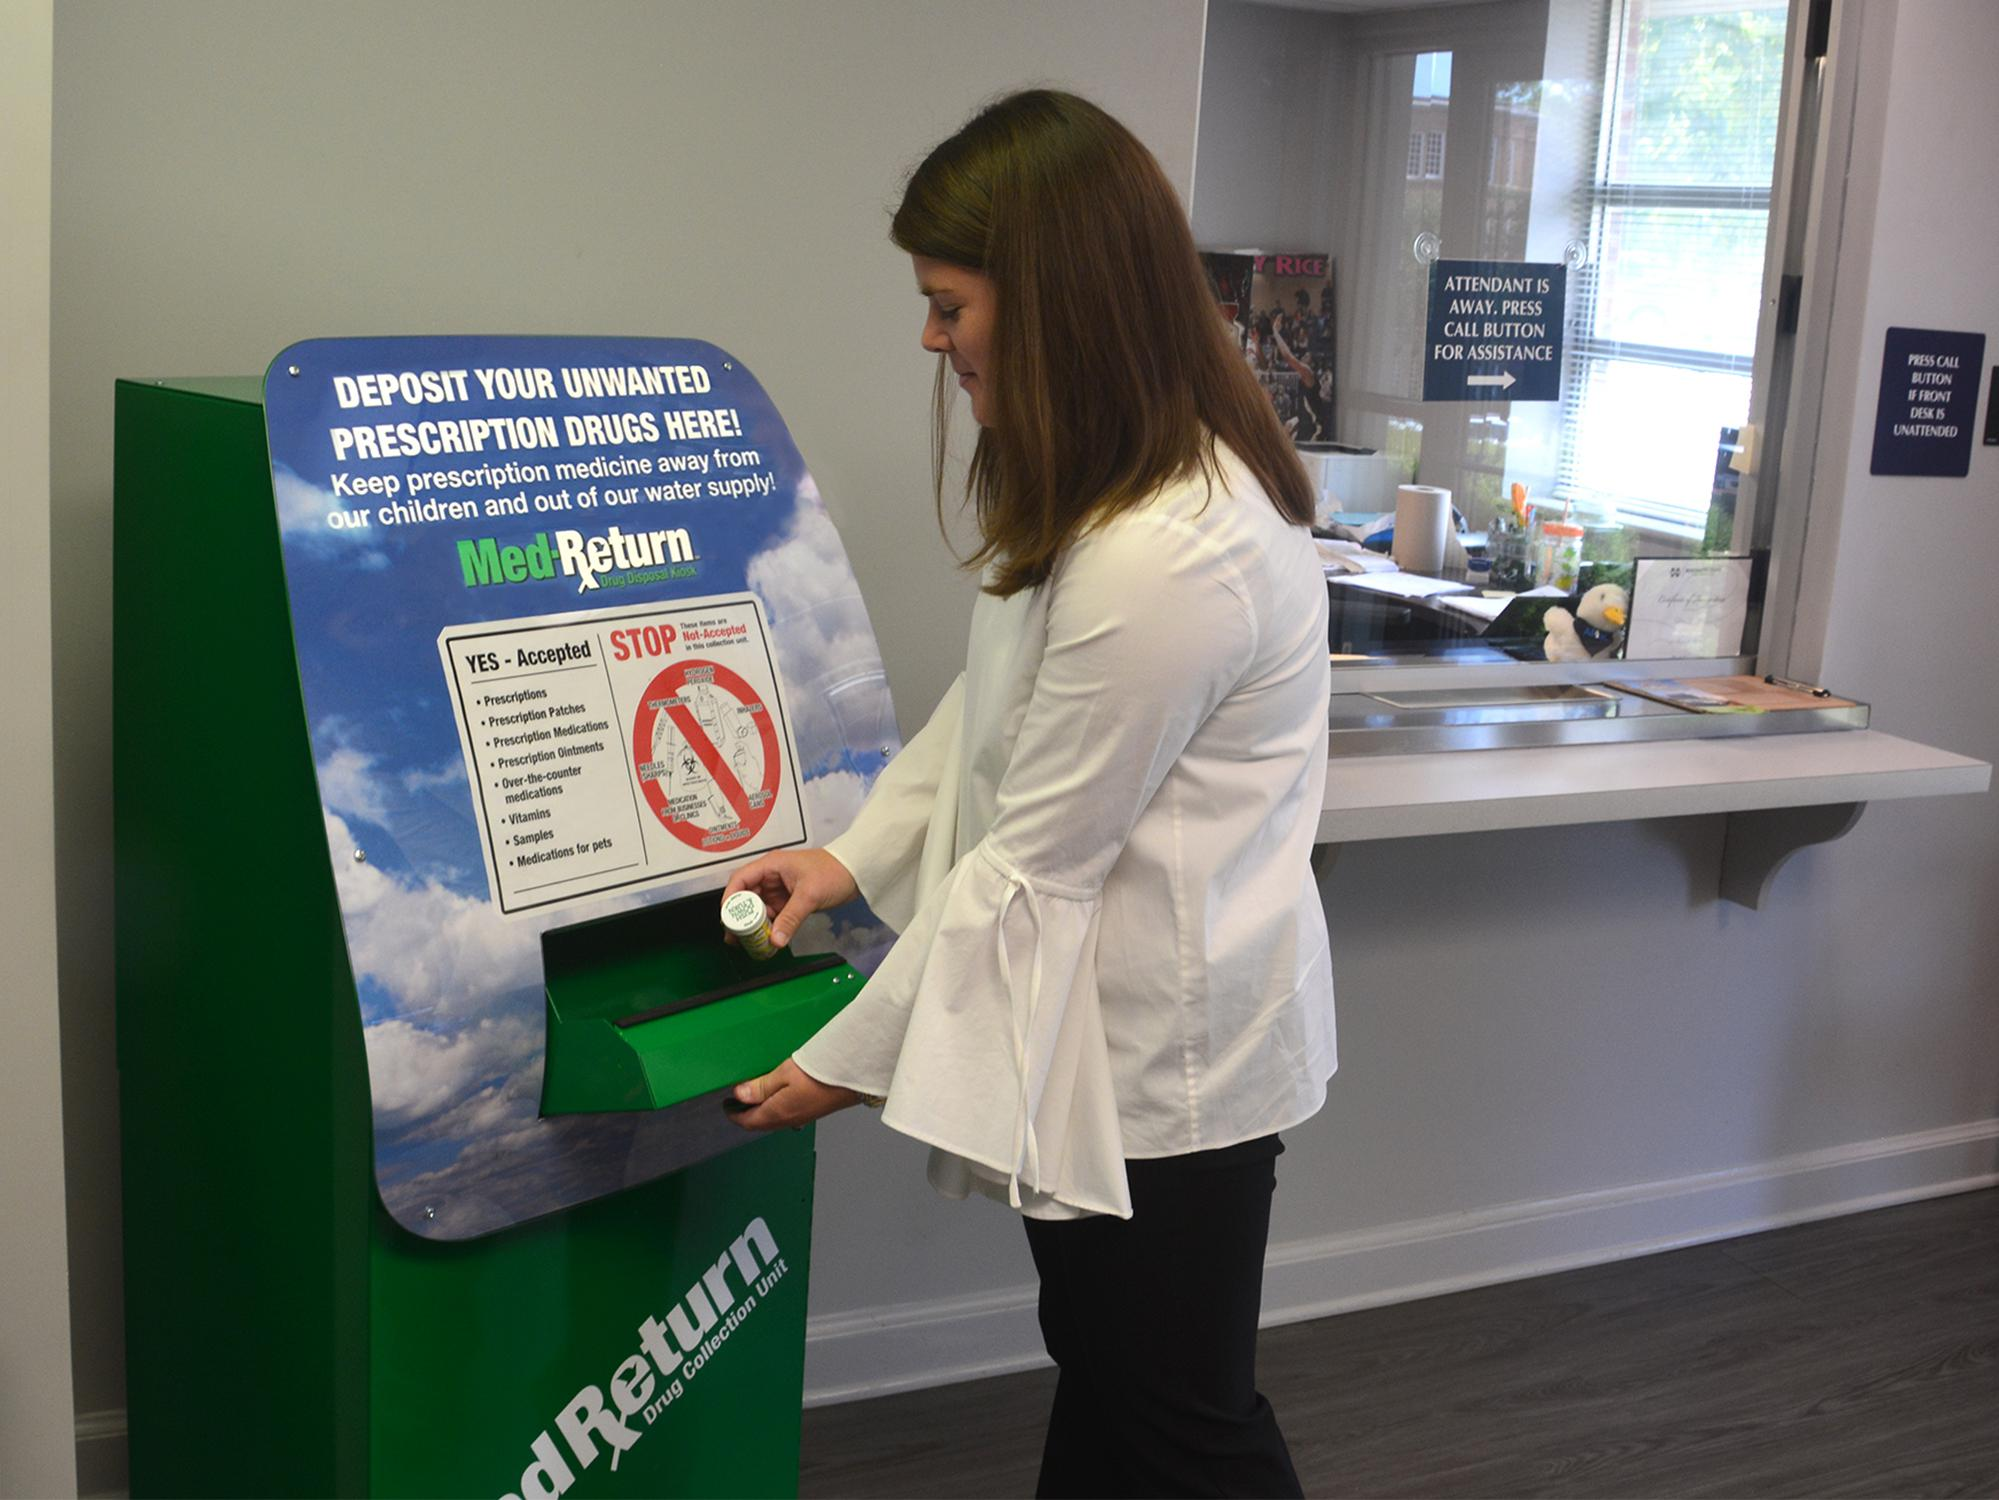 Young woman places a prescription bottle in secure slot in a large, green metal box